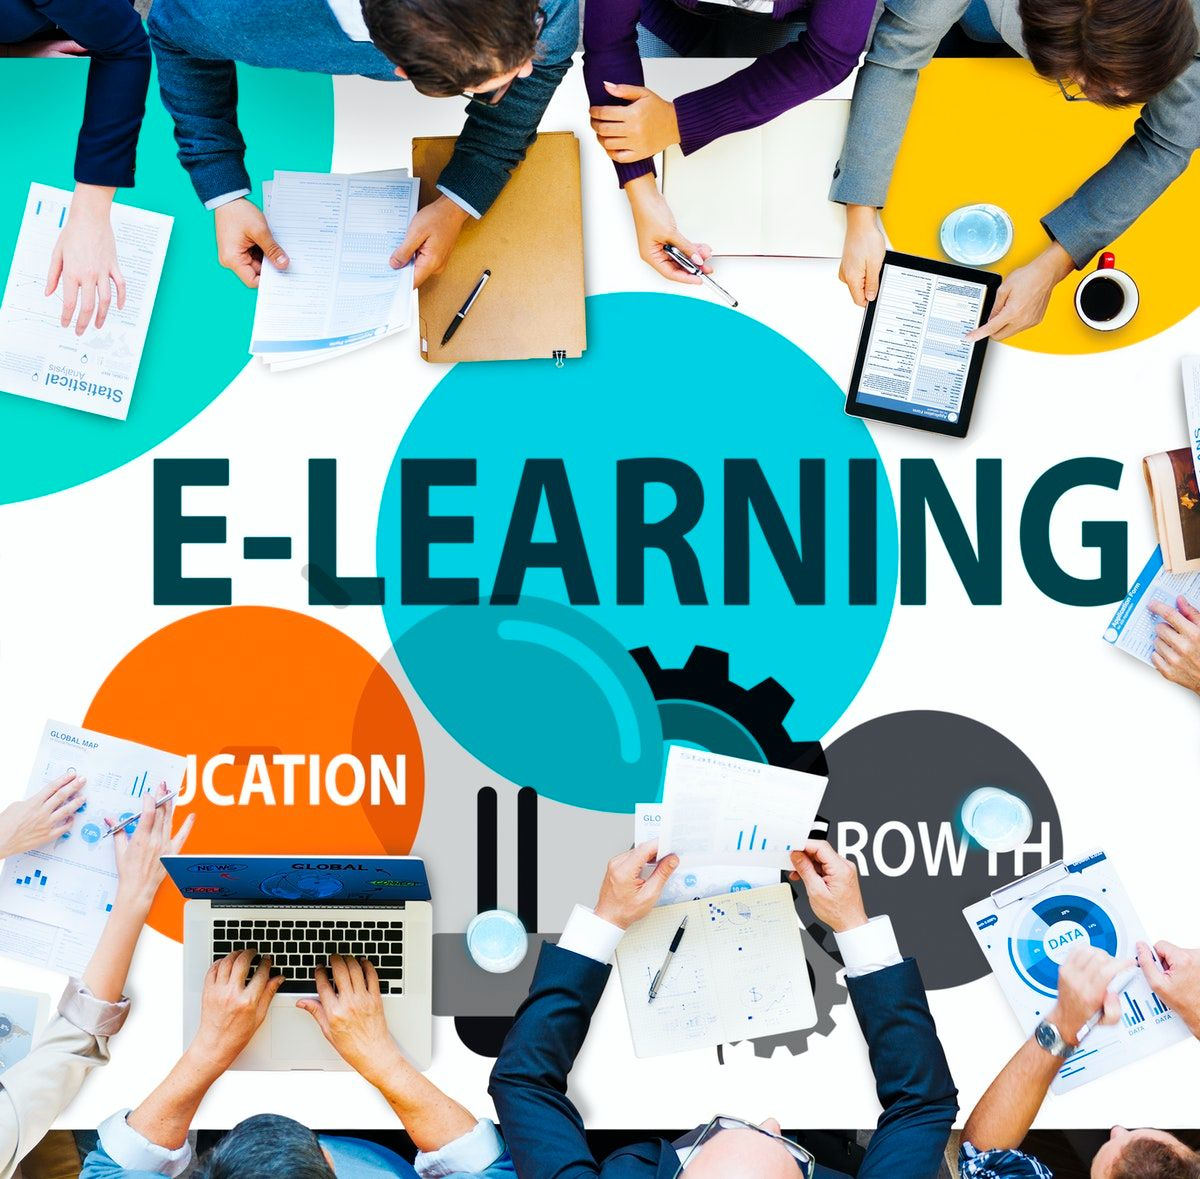 /5-reasons-why-elearning-might-become-the-new-normal-6n133ztc feature image